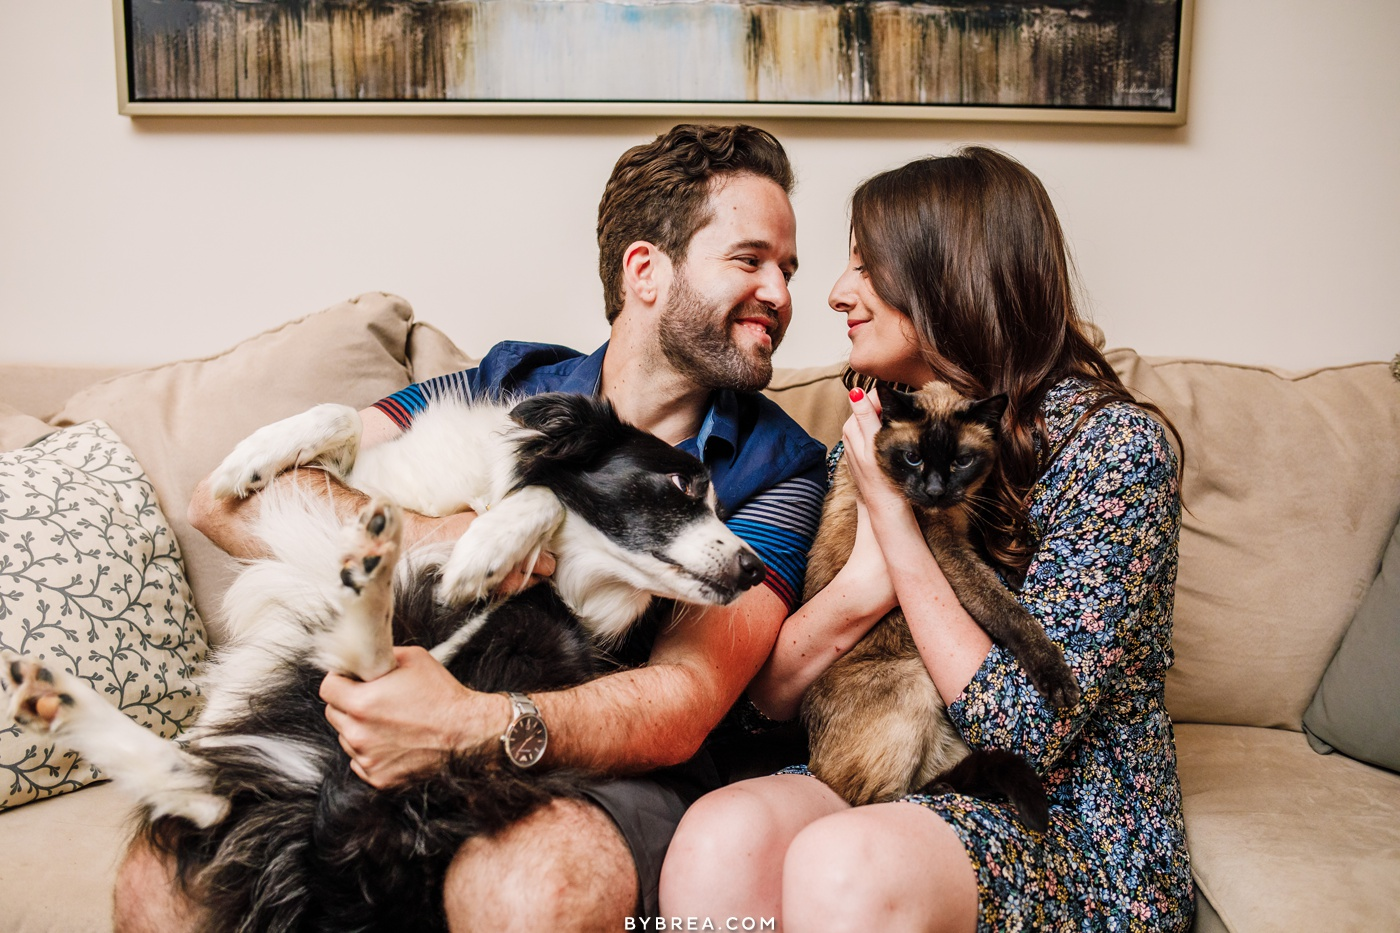 Lifestyle engagement photo of couple enjoying pet friends in their home